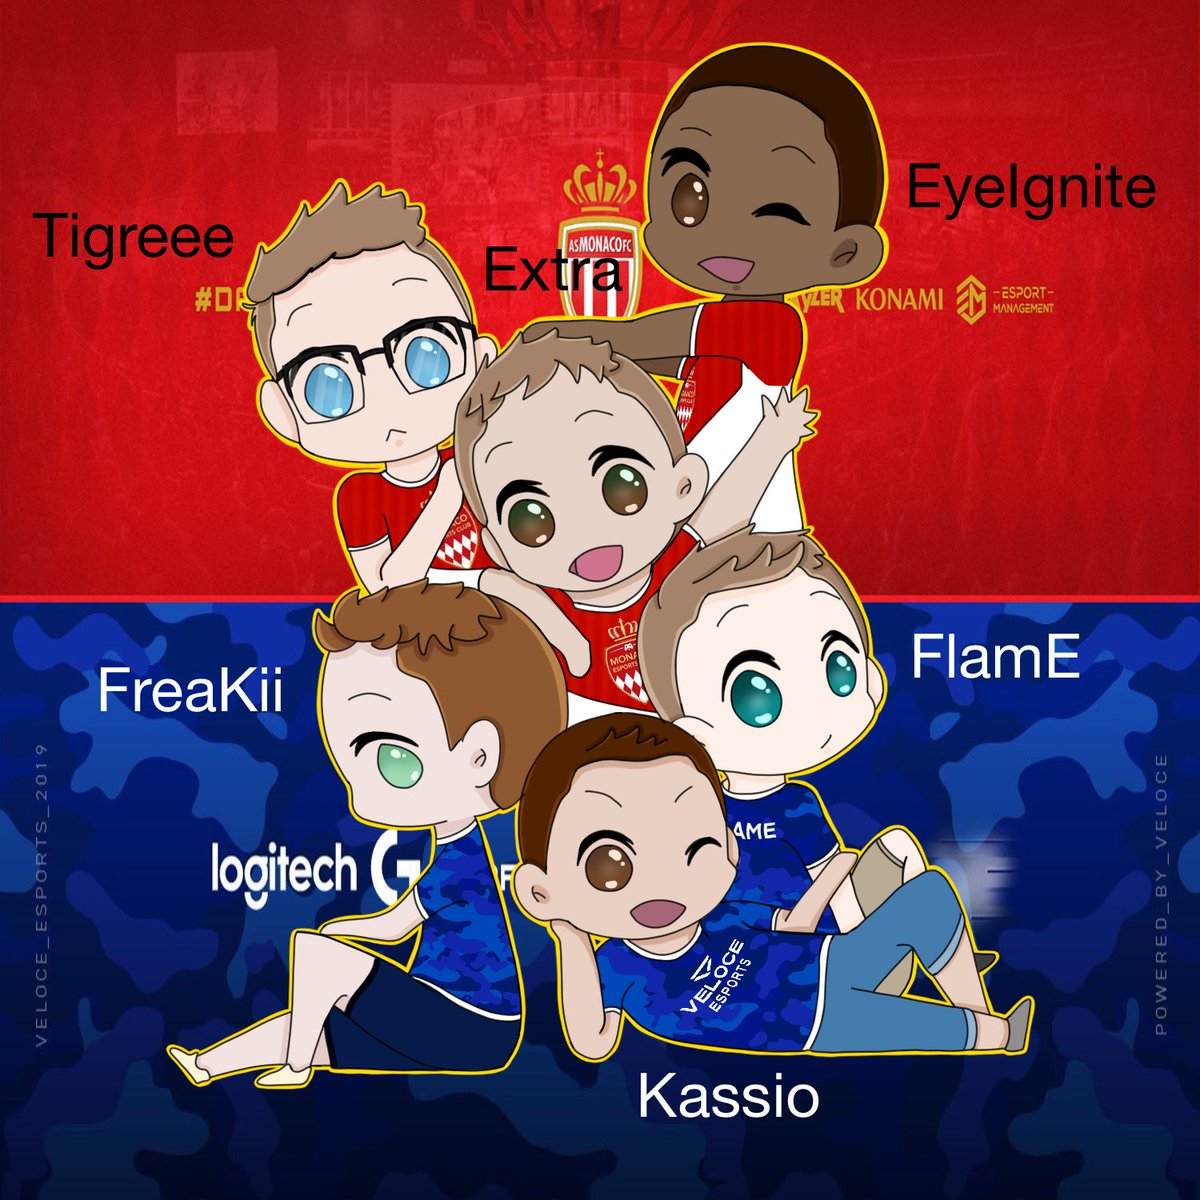 double hype for getting signed and for game day!!! love all of you boys, so unbelievably proud of you!!! @TigreeeRL @Extra_RL @EyeIgnite @FreaKiiRL @Kassio_RL @FlamE_RL @ASMonacoEsports @VeloceEsports